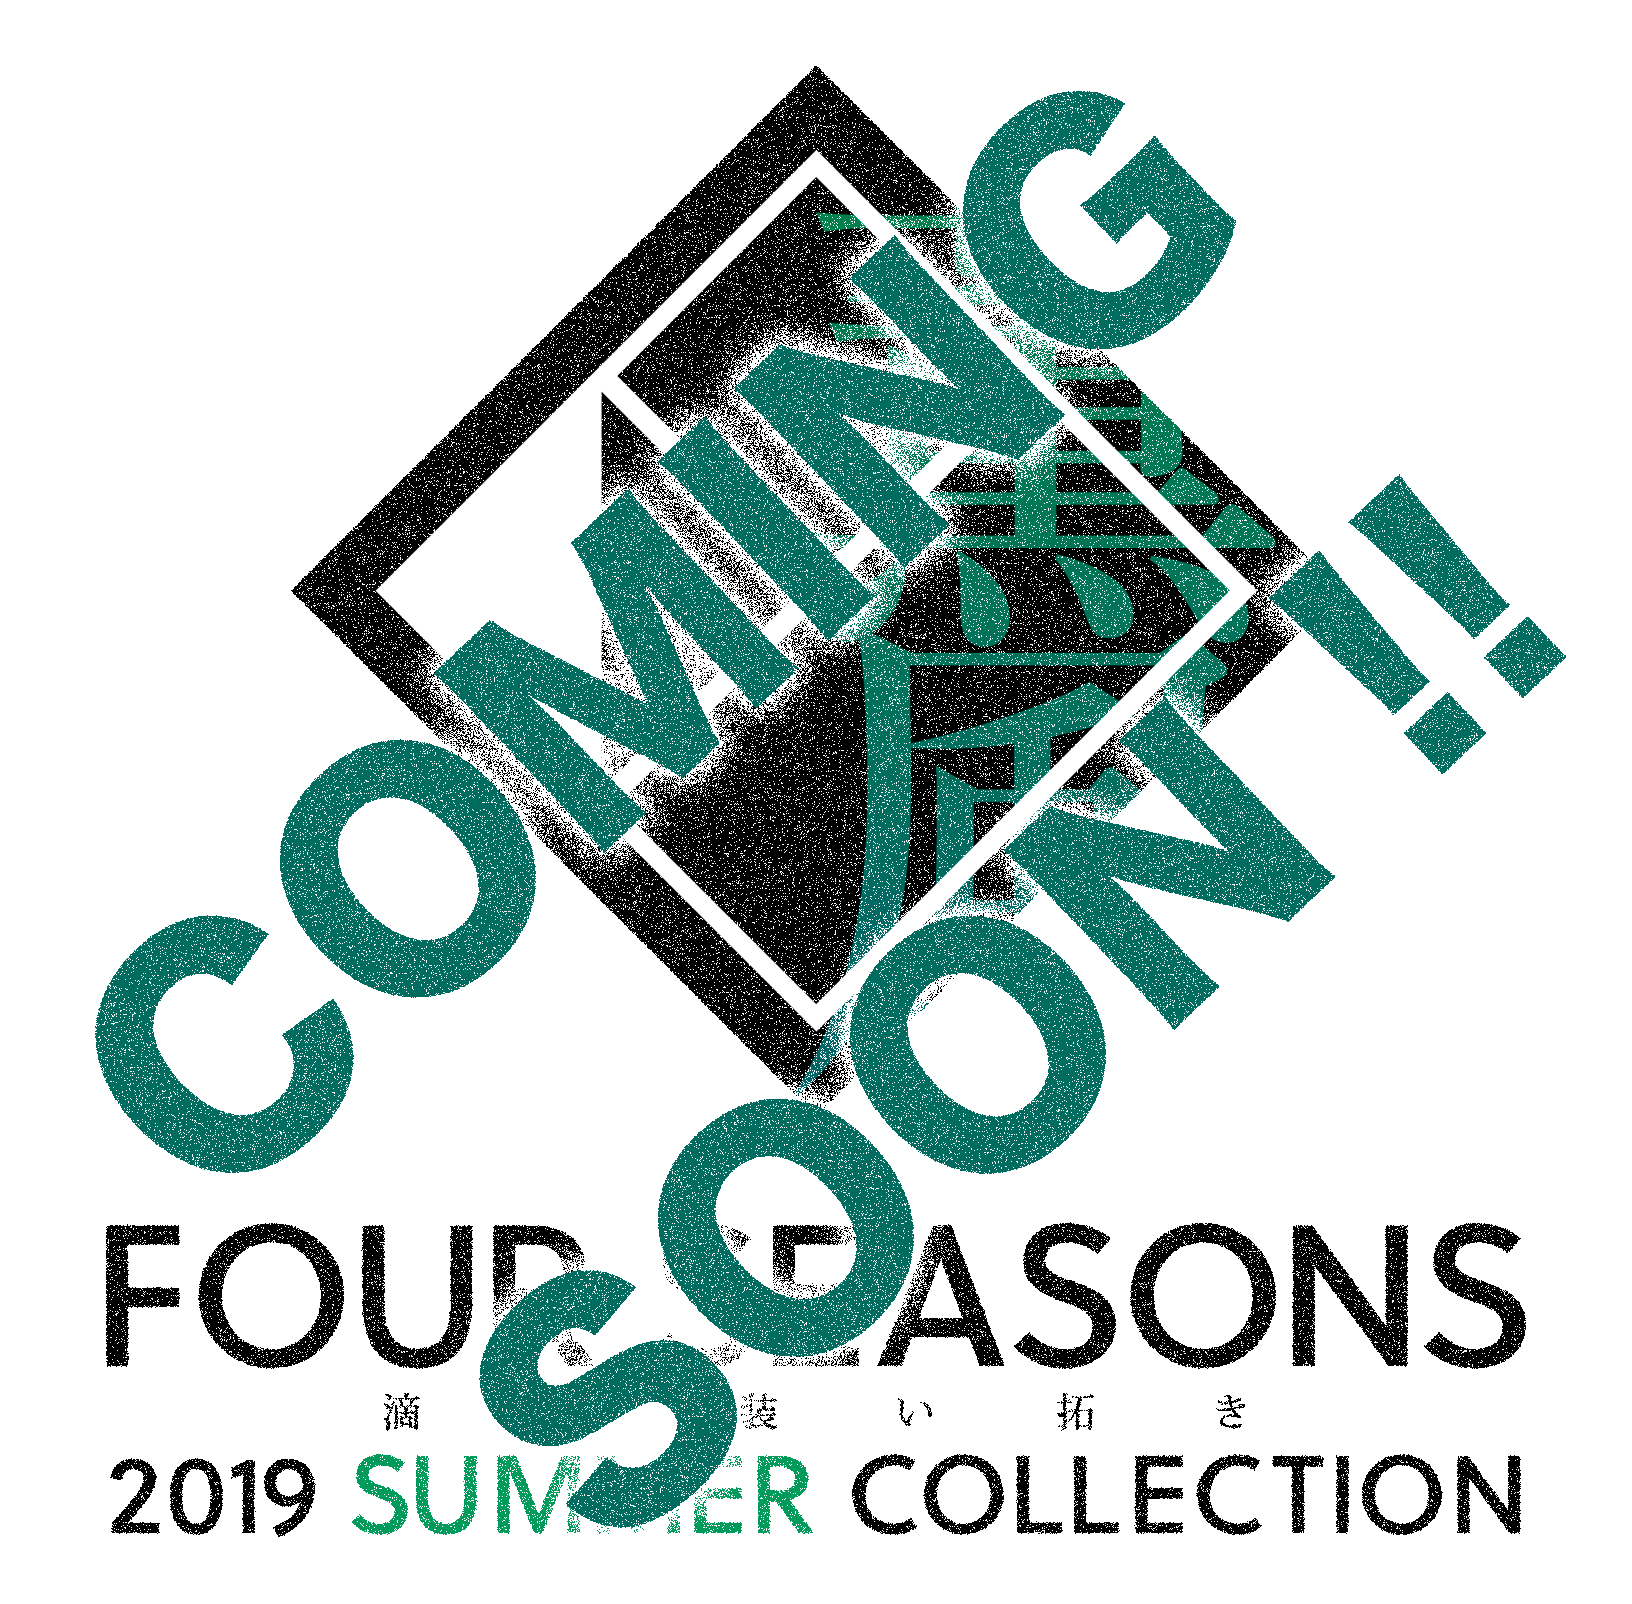 2019 SUMMER COLLECTION 先行受注会